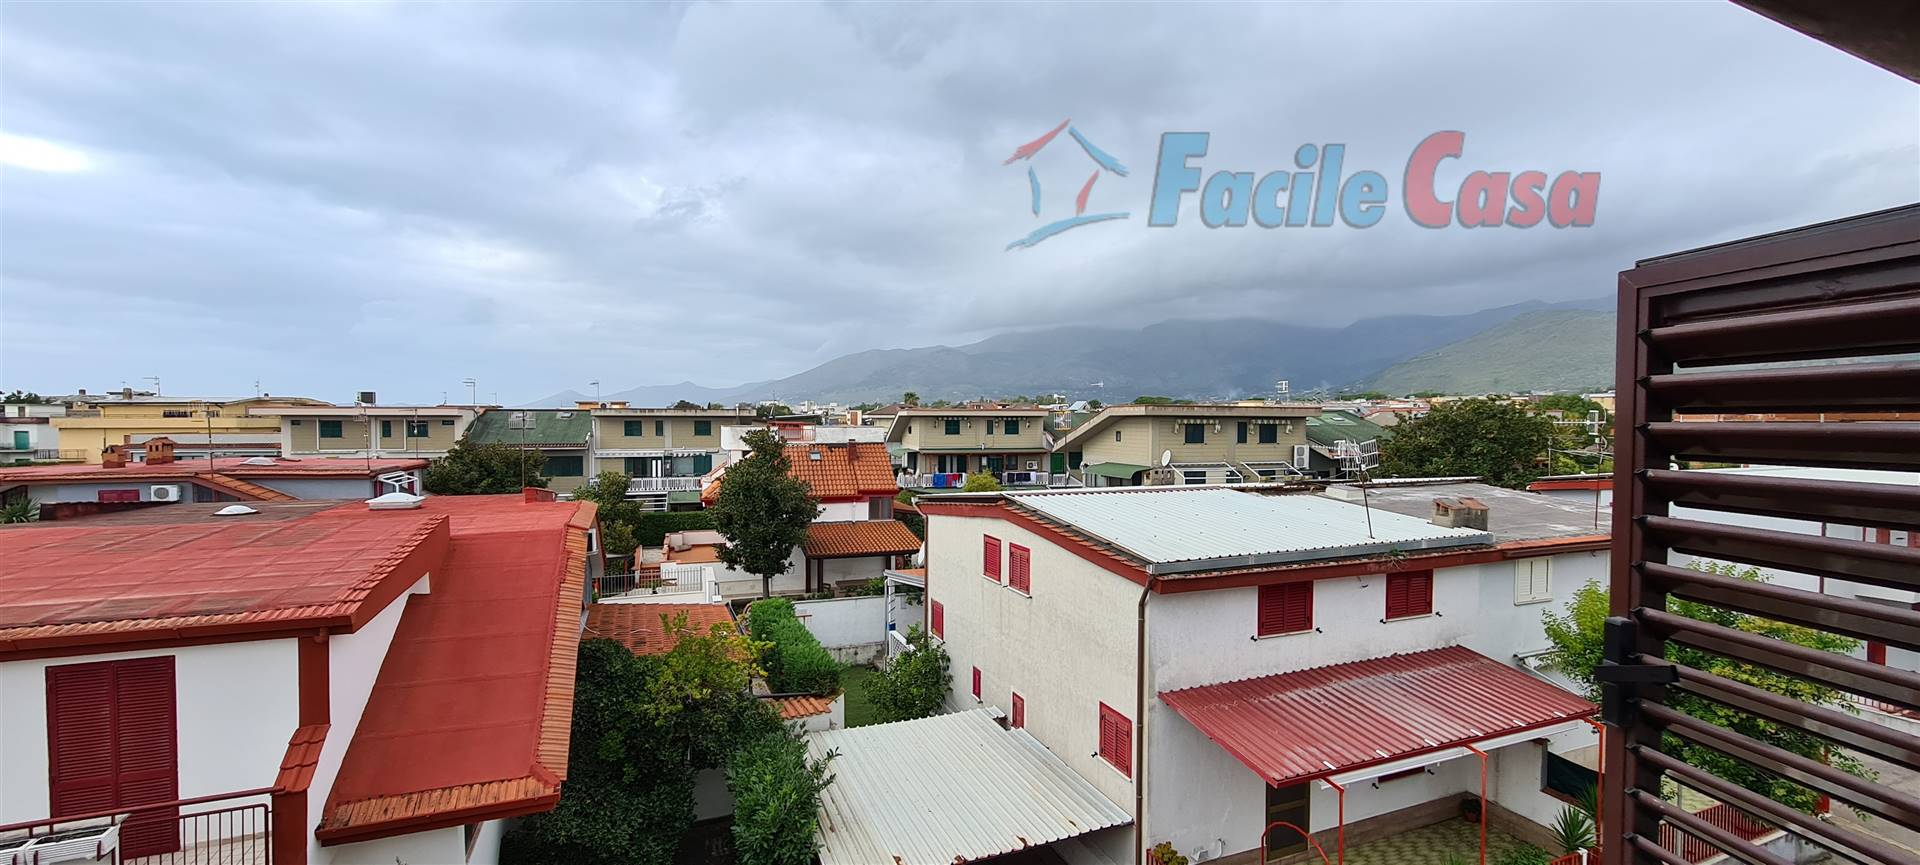 GIANOLA, FORMIA, Apartment for sale of 30 Sq. mt., Good condition, Heating Individual heating system, Energetic class: G, placed at 2° on 2, composed